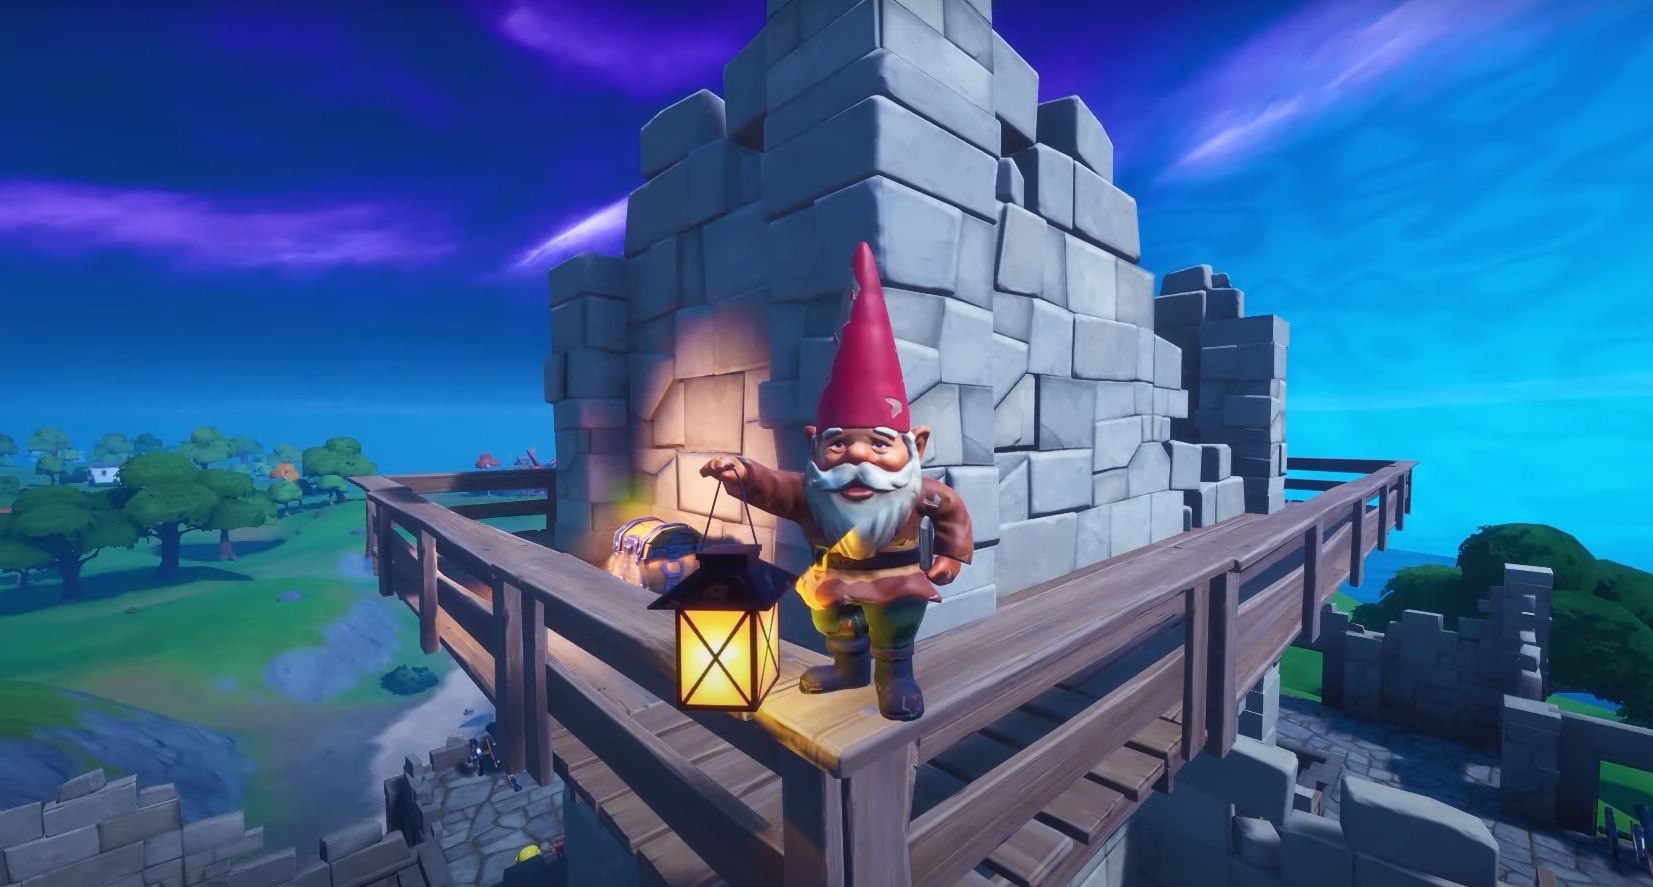 Gnome on the Fortnite map holding a lantern